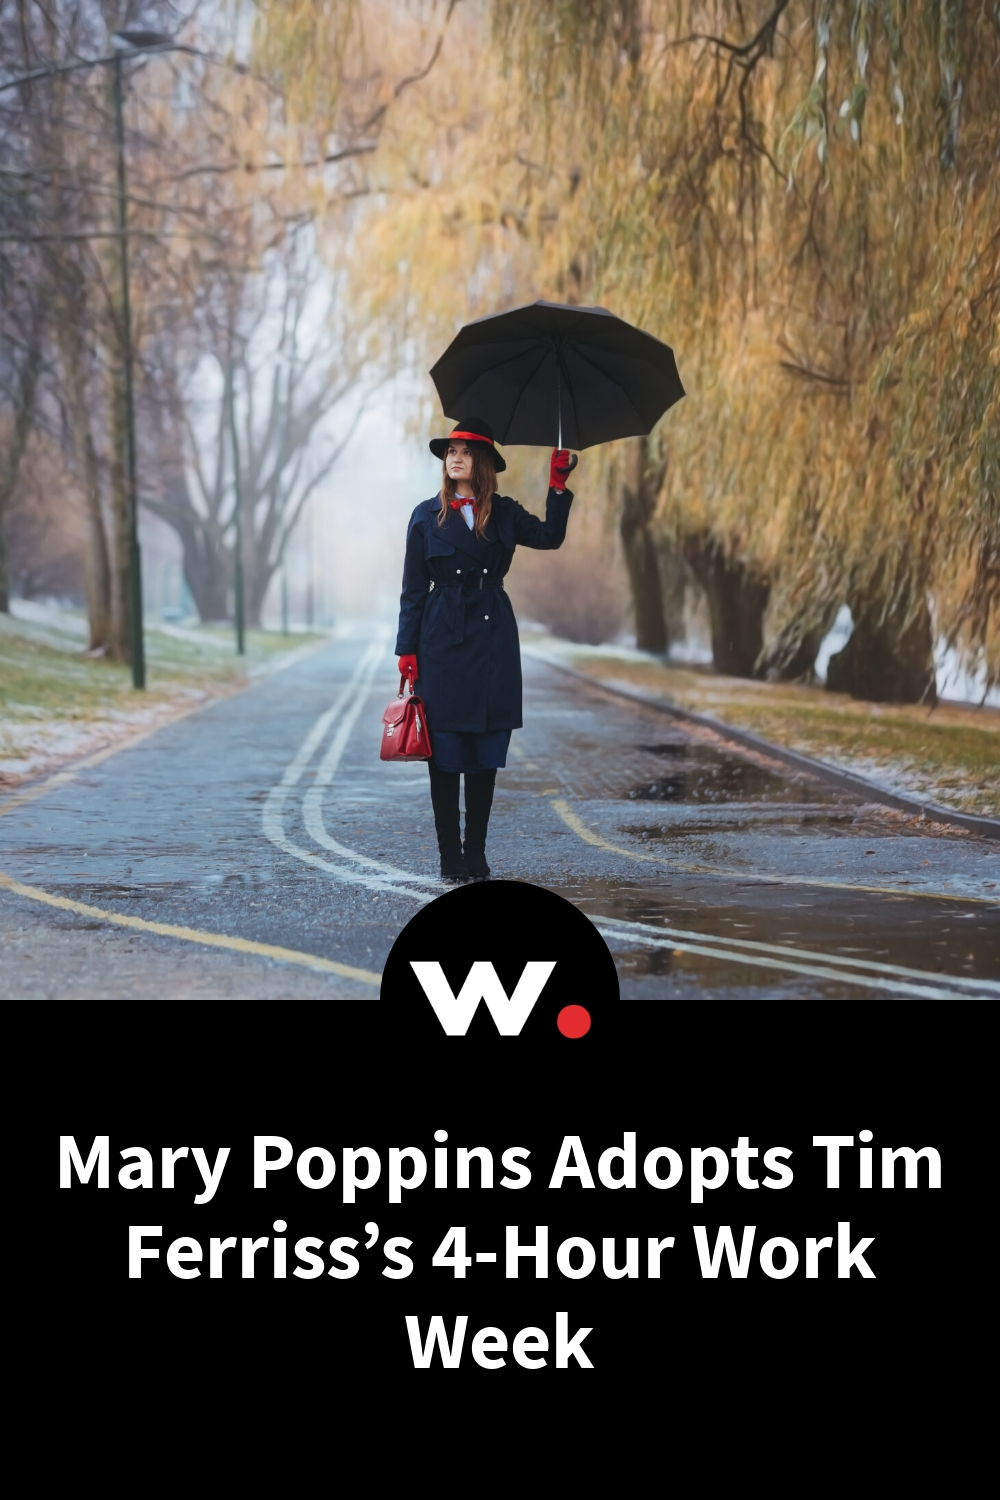 Mary Poppins Adopts Tim Ferriss's 4-Hour Work Week